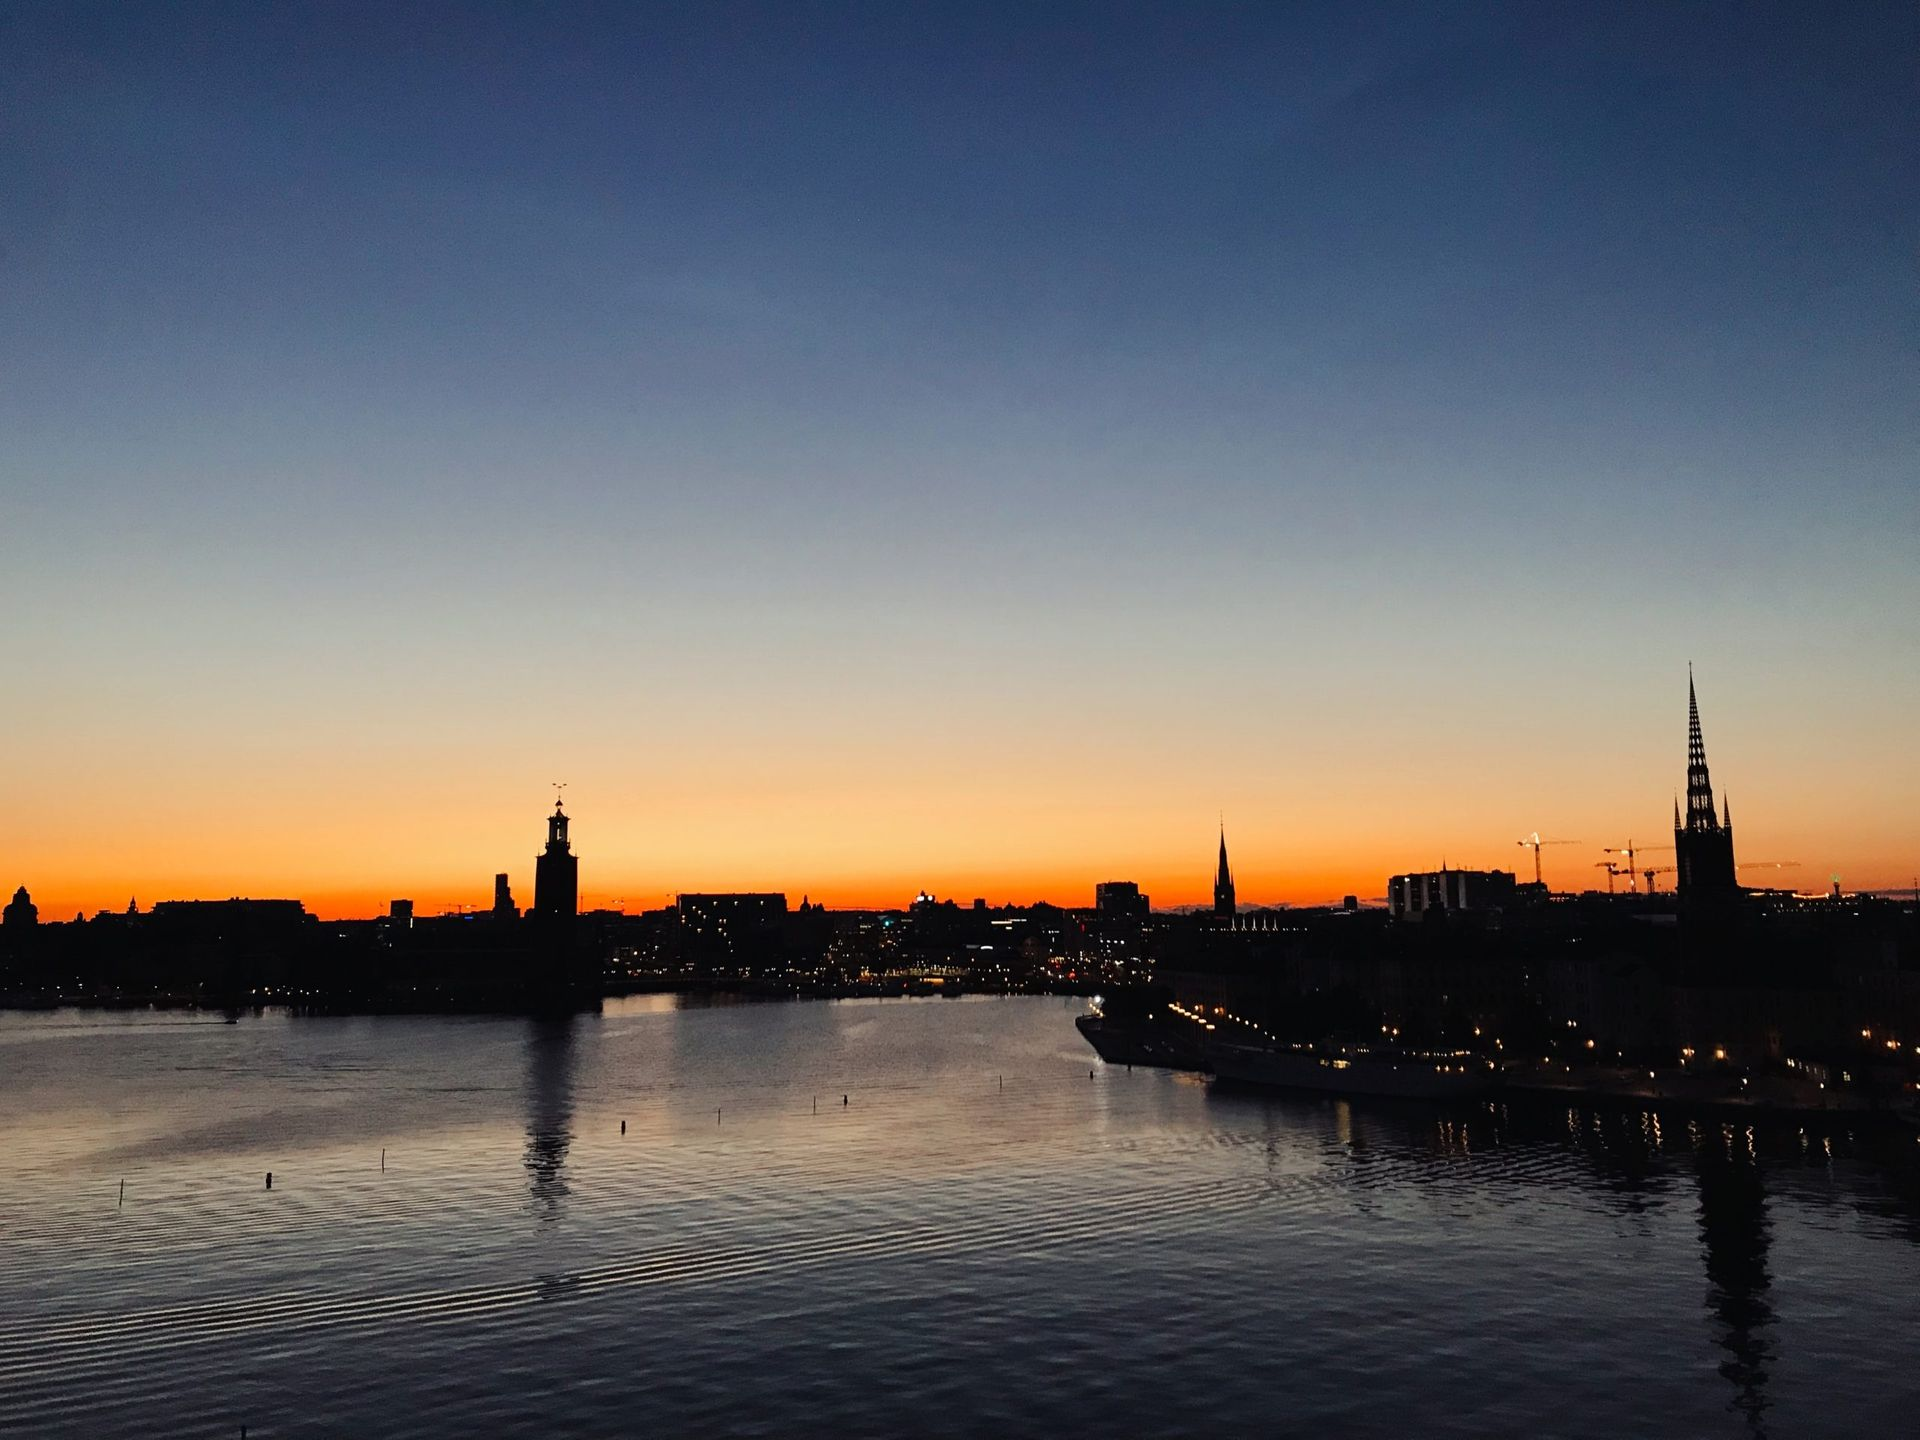 Stockholm skyline silhouetted against a yellow and orange sunset.